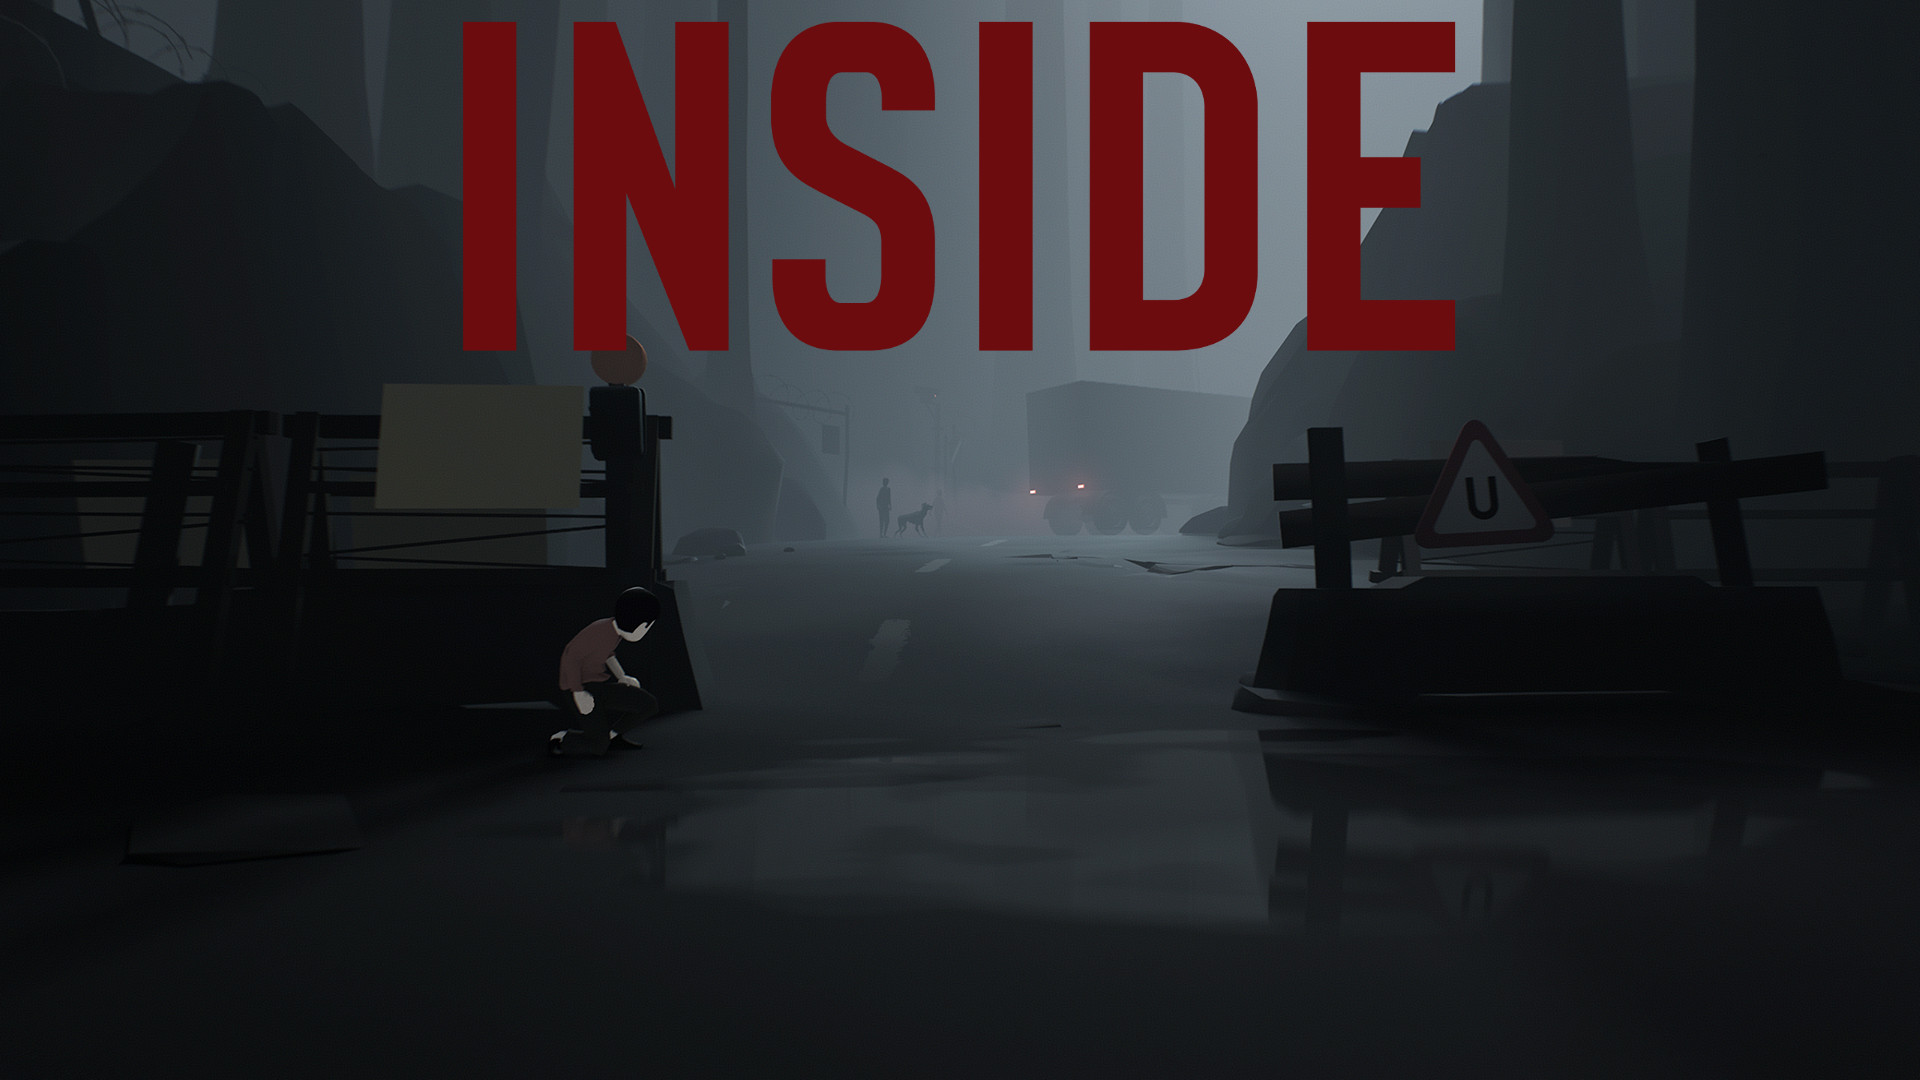 Inside is coming to the Nintendo Switch